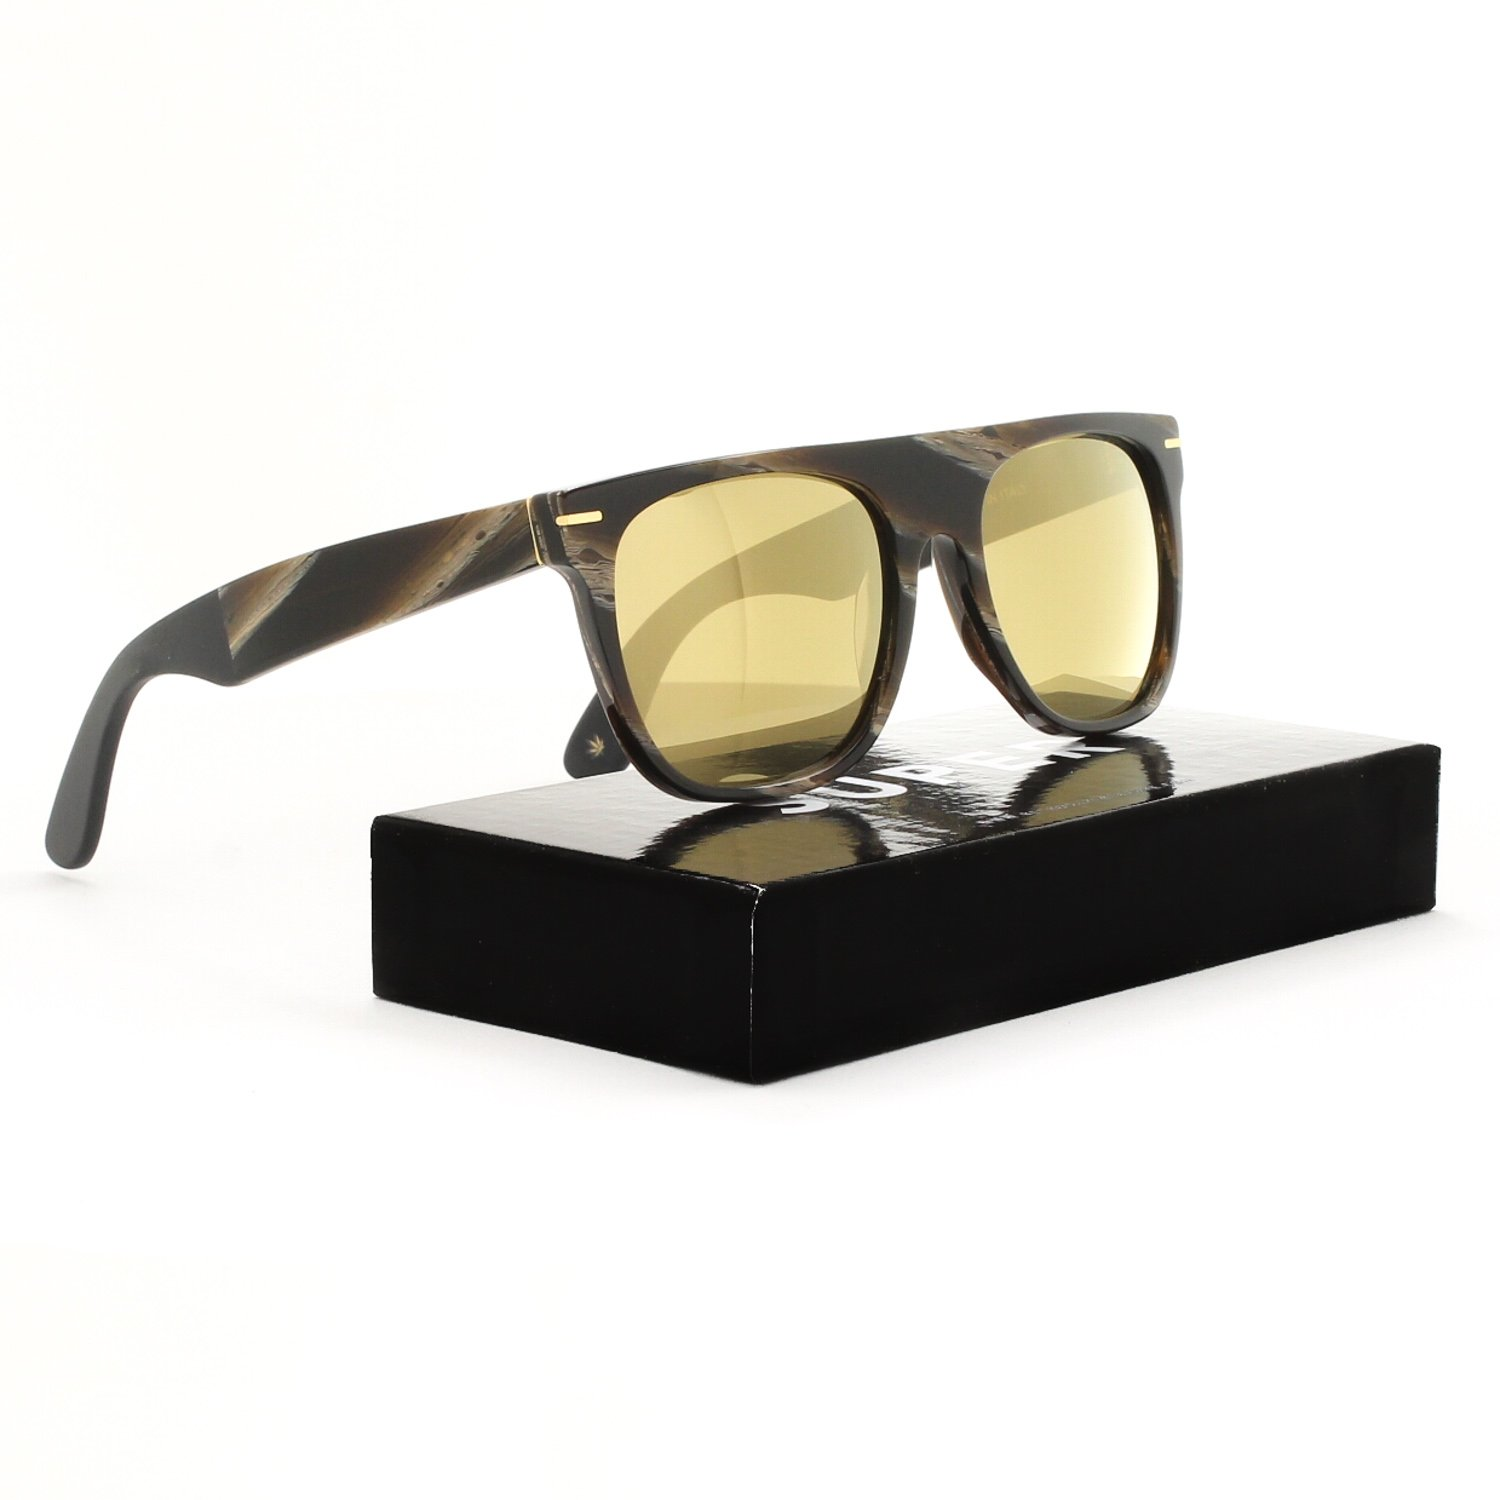 RetroSuperFuture Flat Top Sunglasses | Motorpsycho by RETROSUPERFUTURE (Image #6)